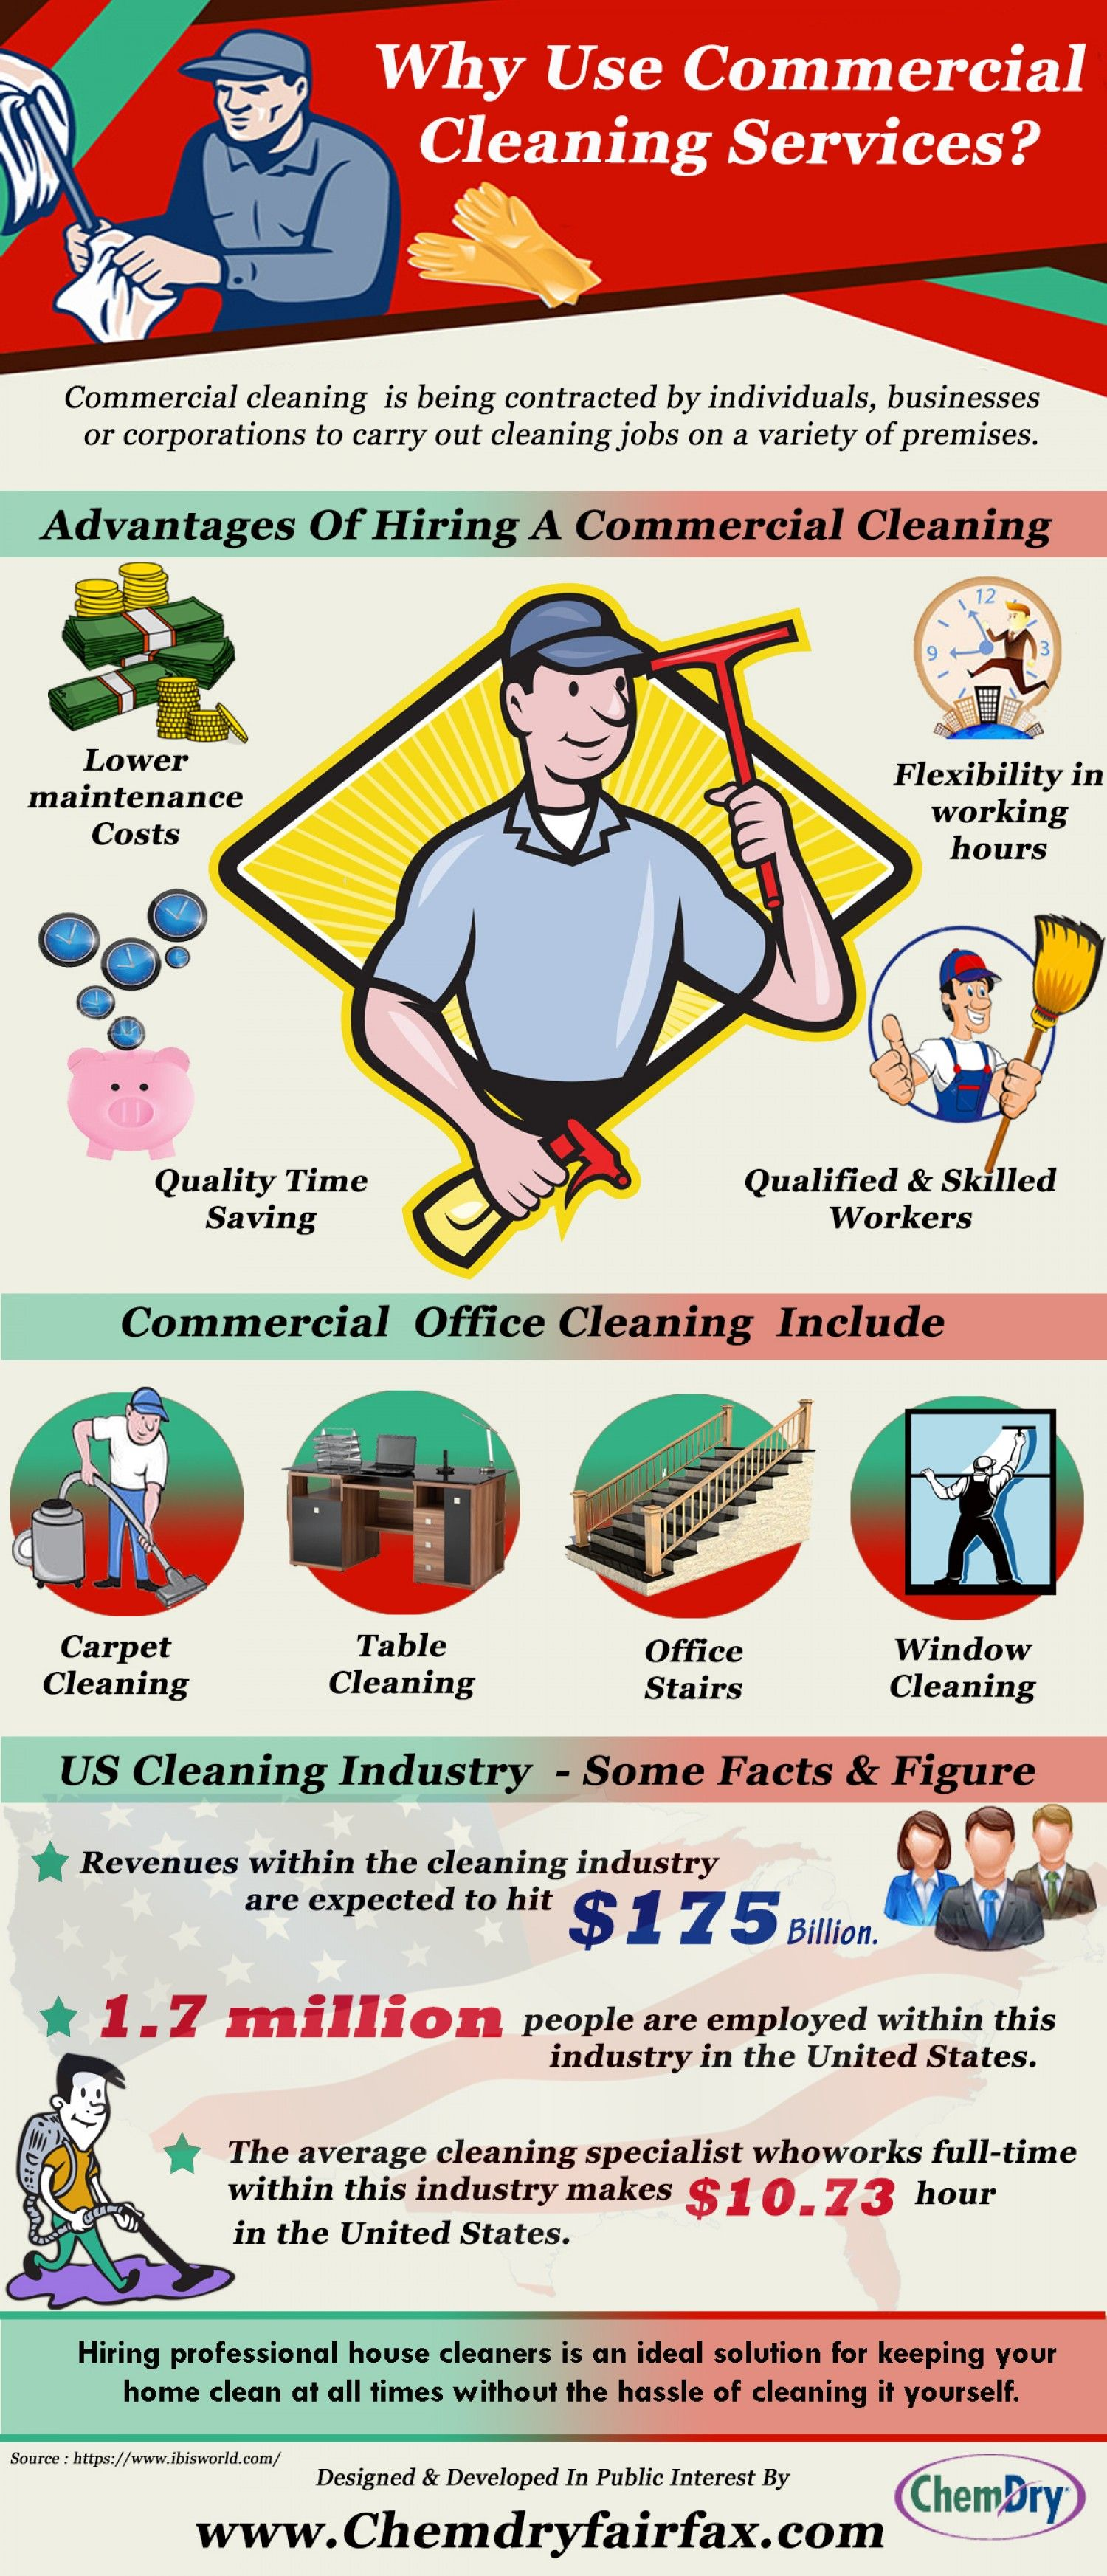 Chem dry has become the worlds largest upholstery and carpet chem dry has become the worlds largest upholstery and carpet cleaning service through the combination solutioingenieria Images